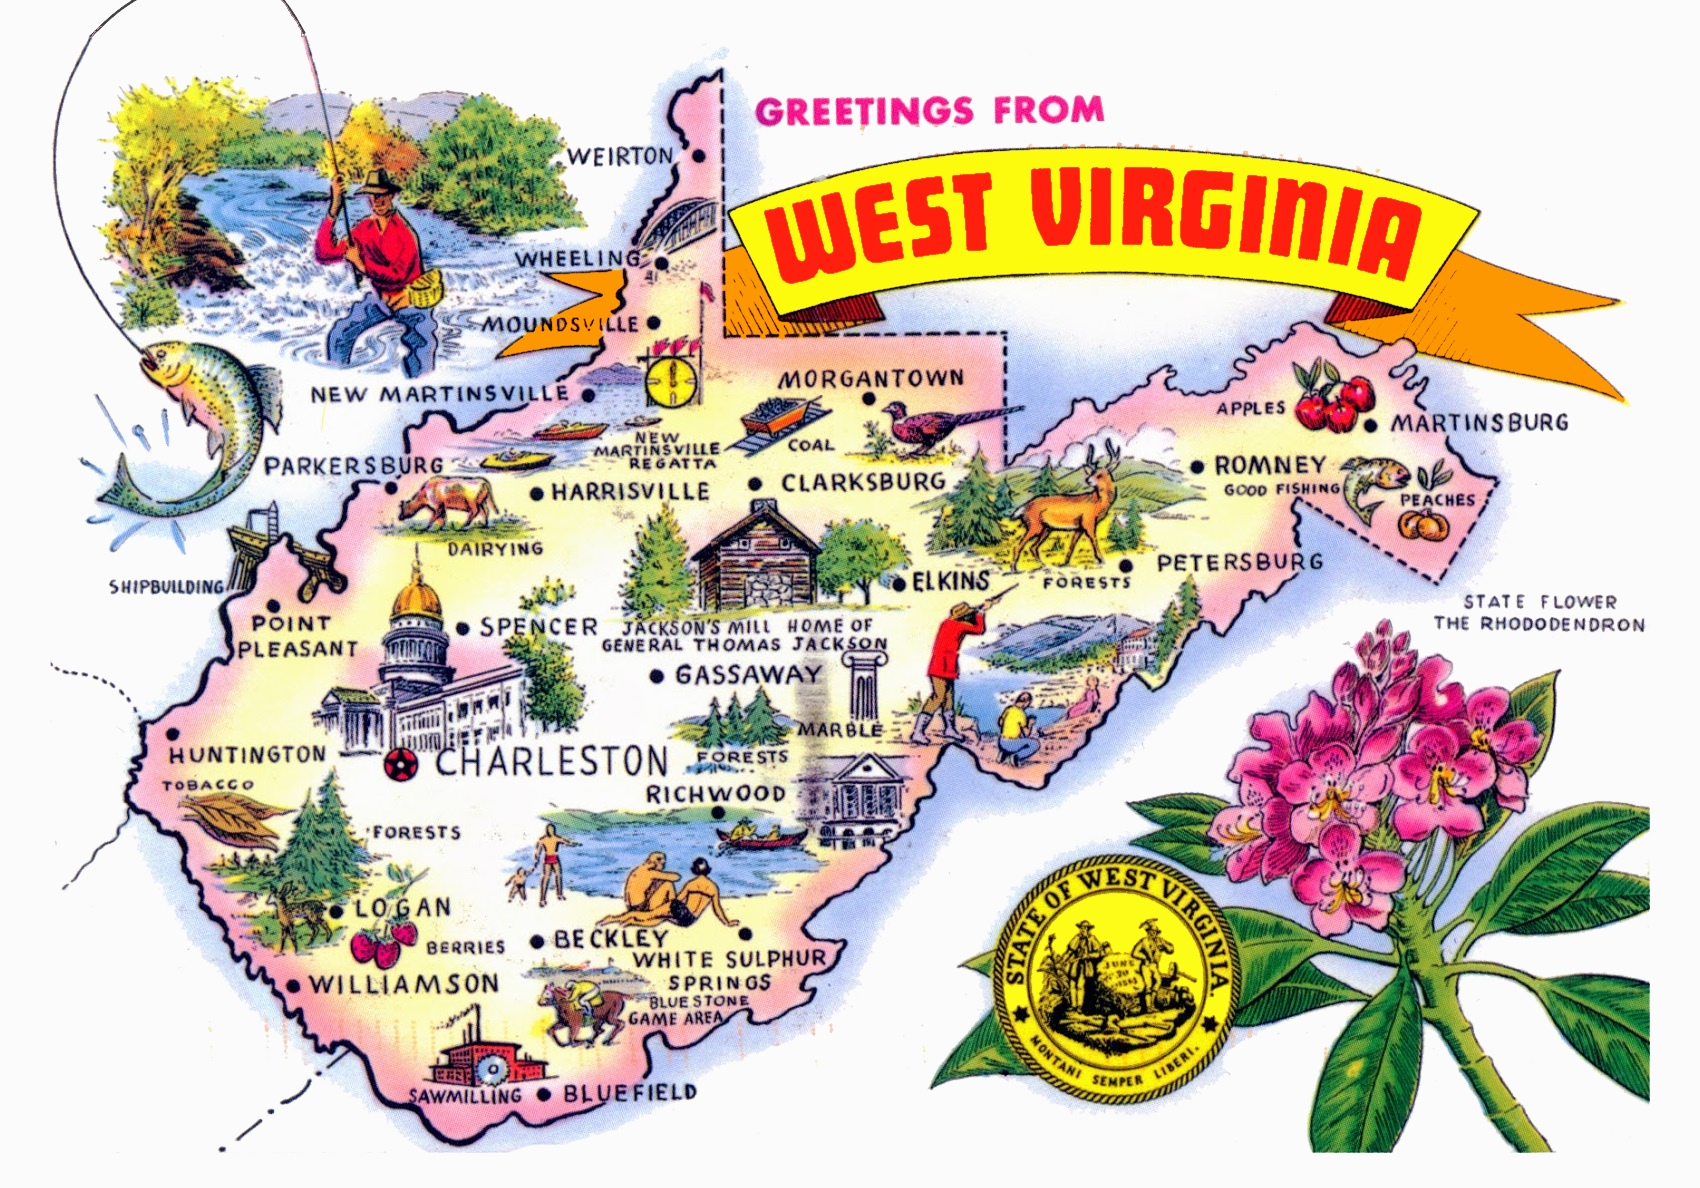 West Virginia State Maps | USA | Maps of West Virginia (WV)